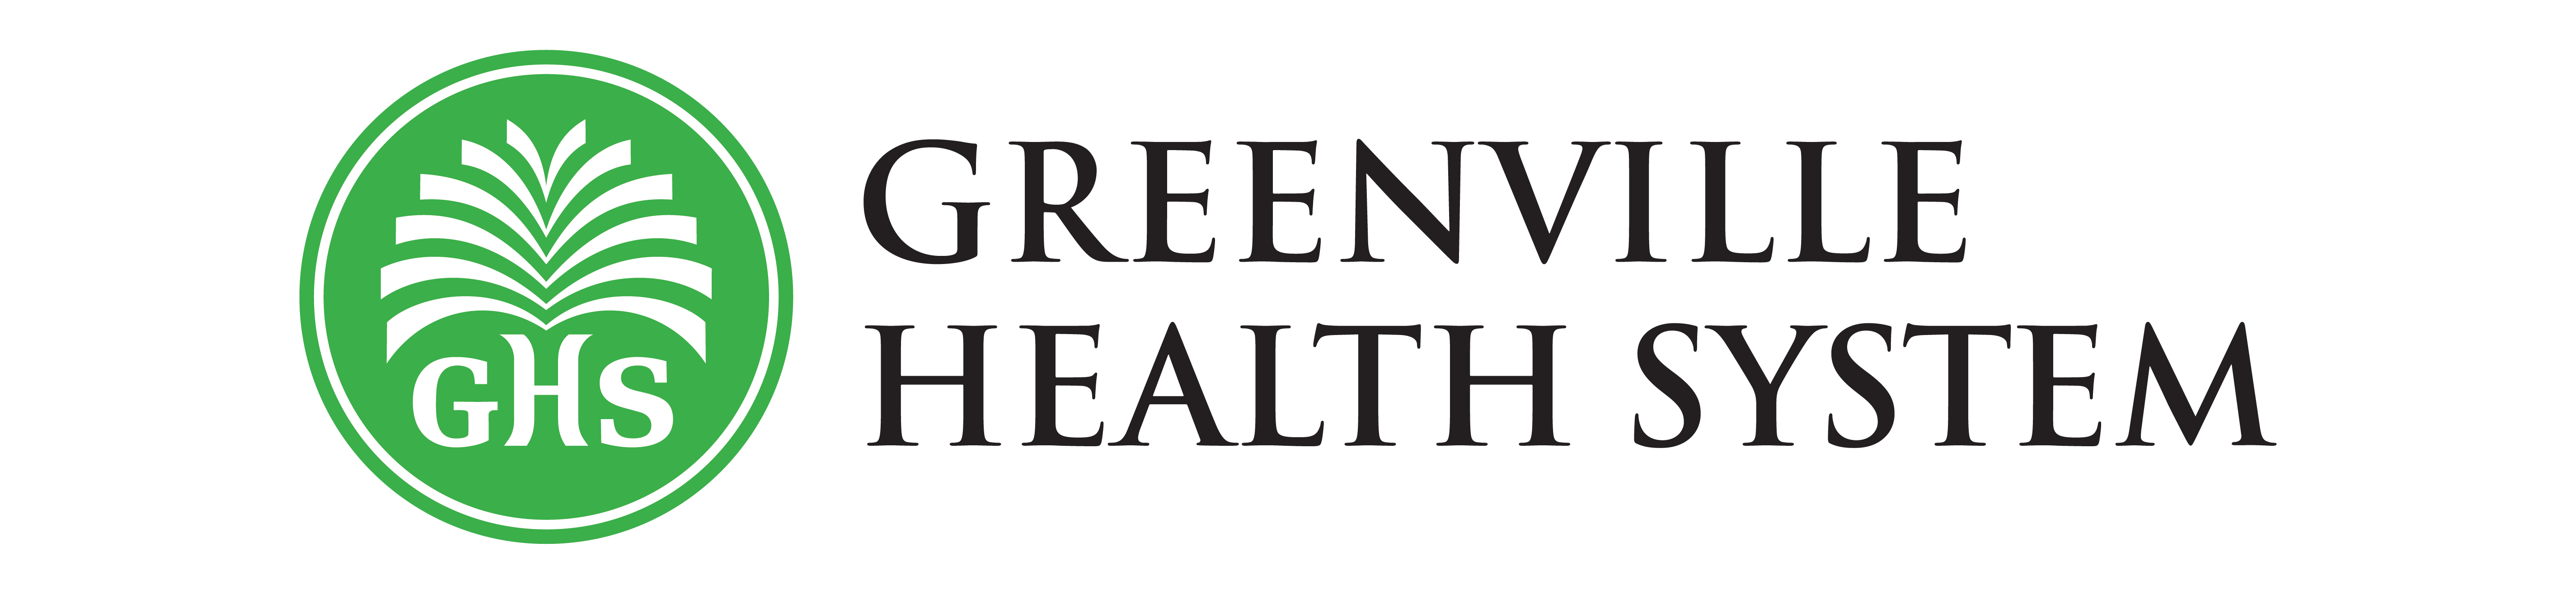 Greenville Health System [Color]-01-01